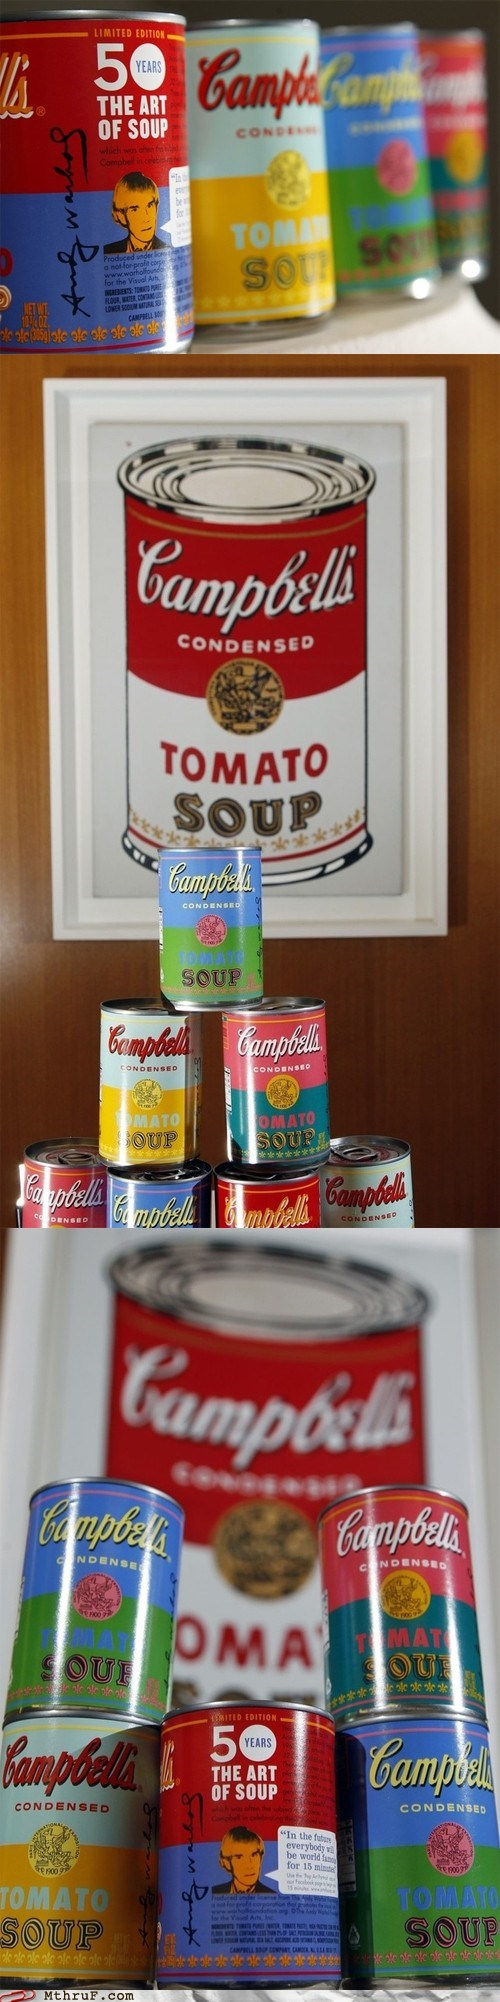 Andy Warhol campbells soup cans Target tomato soup - 6552088320